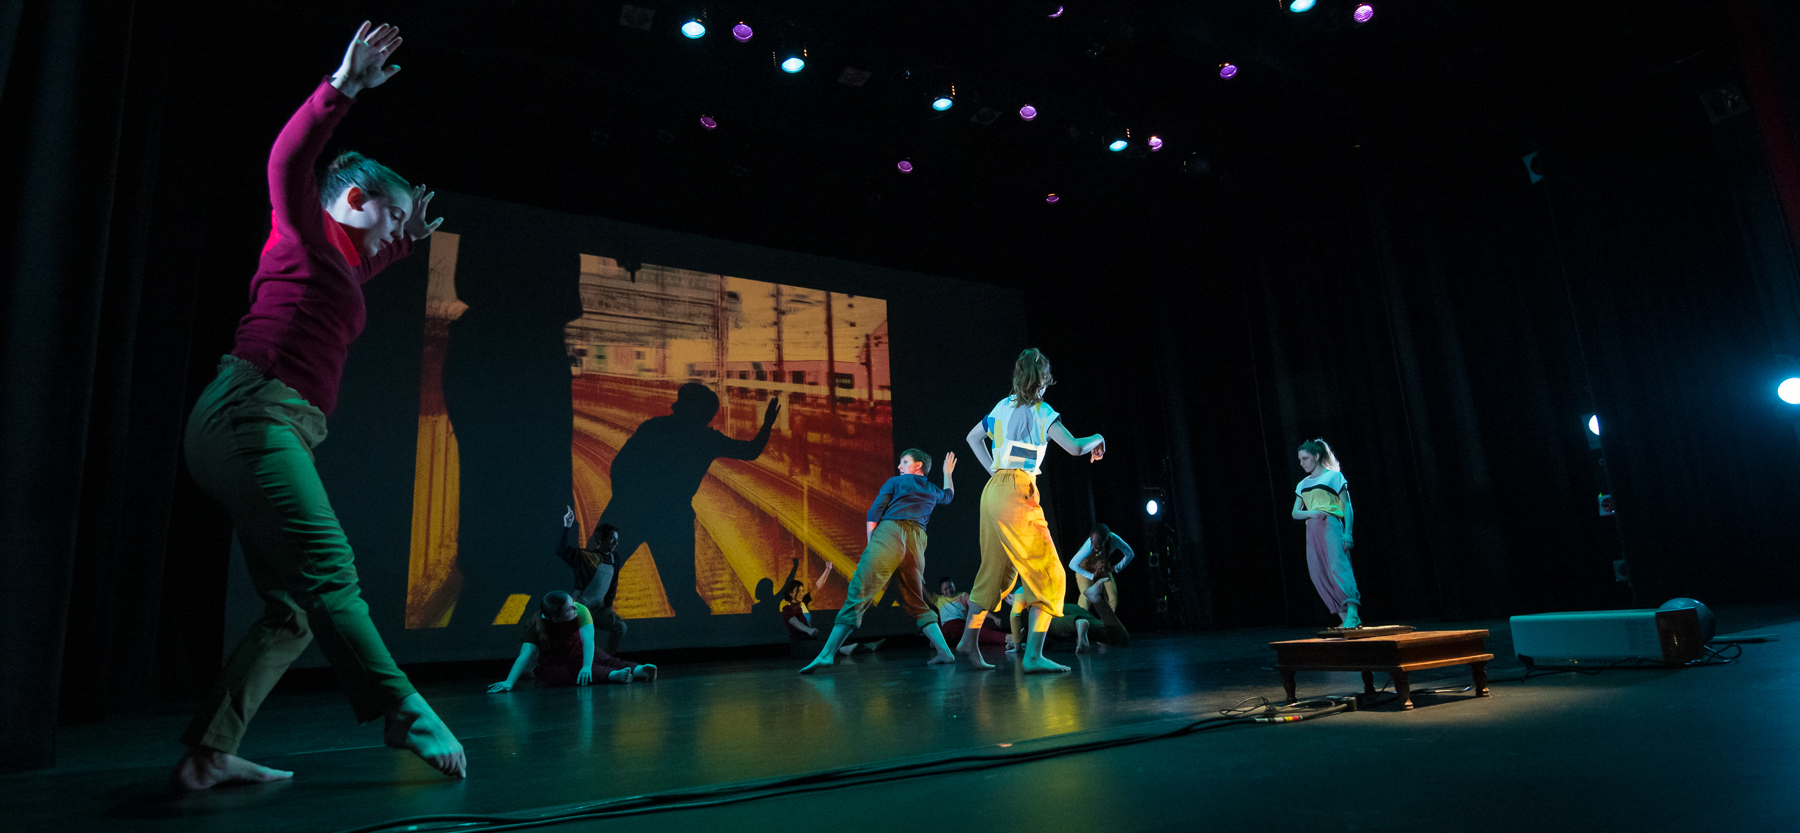 Dancers perform with projection of abstract images behind them, at the Greenberg Theatre